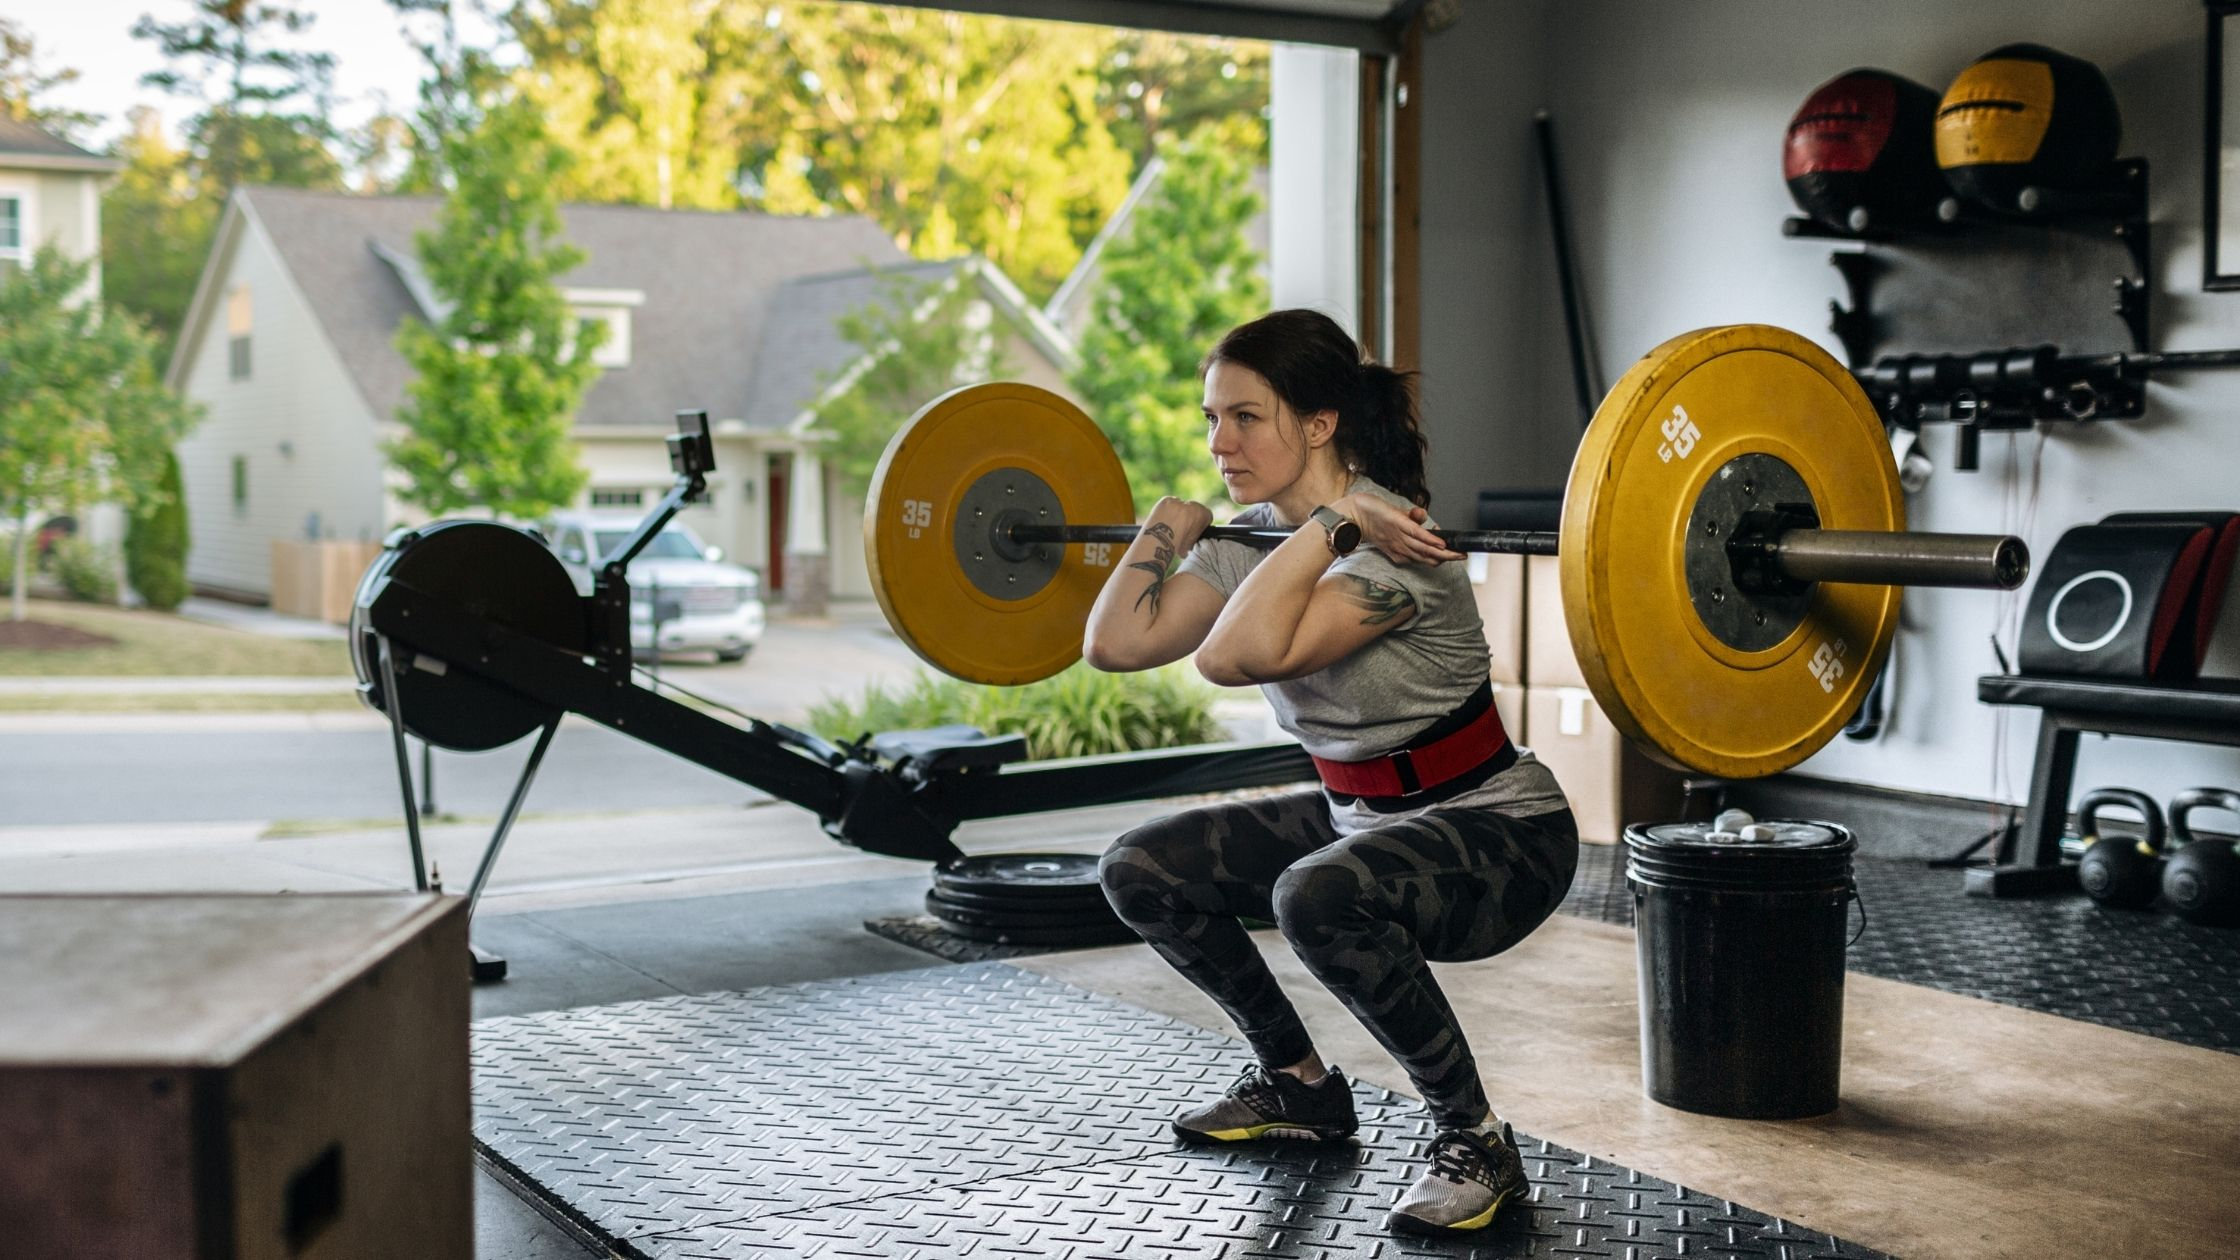 types of gyms: Home Garage gyms